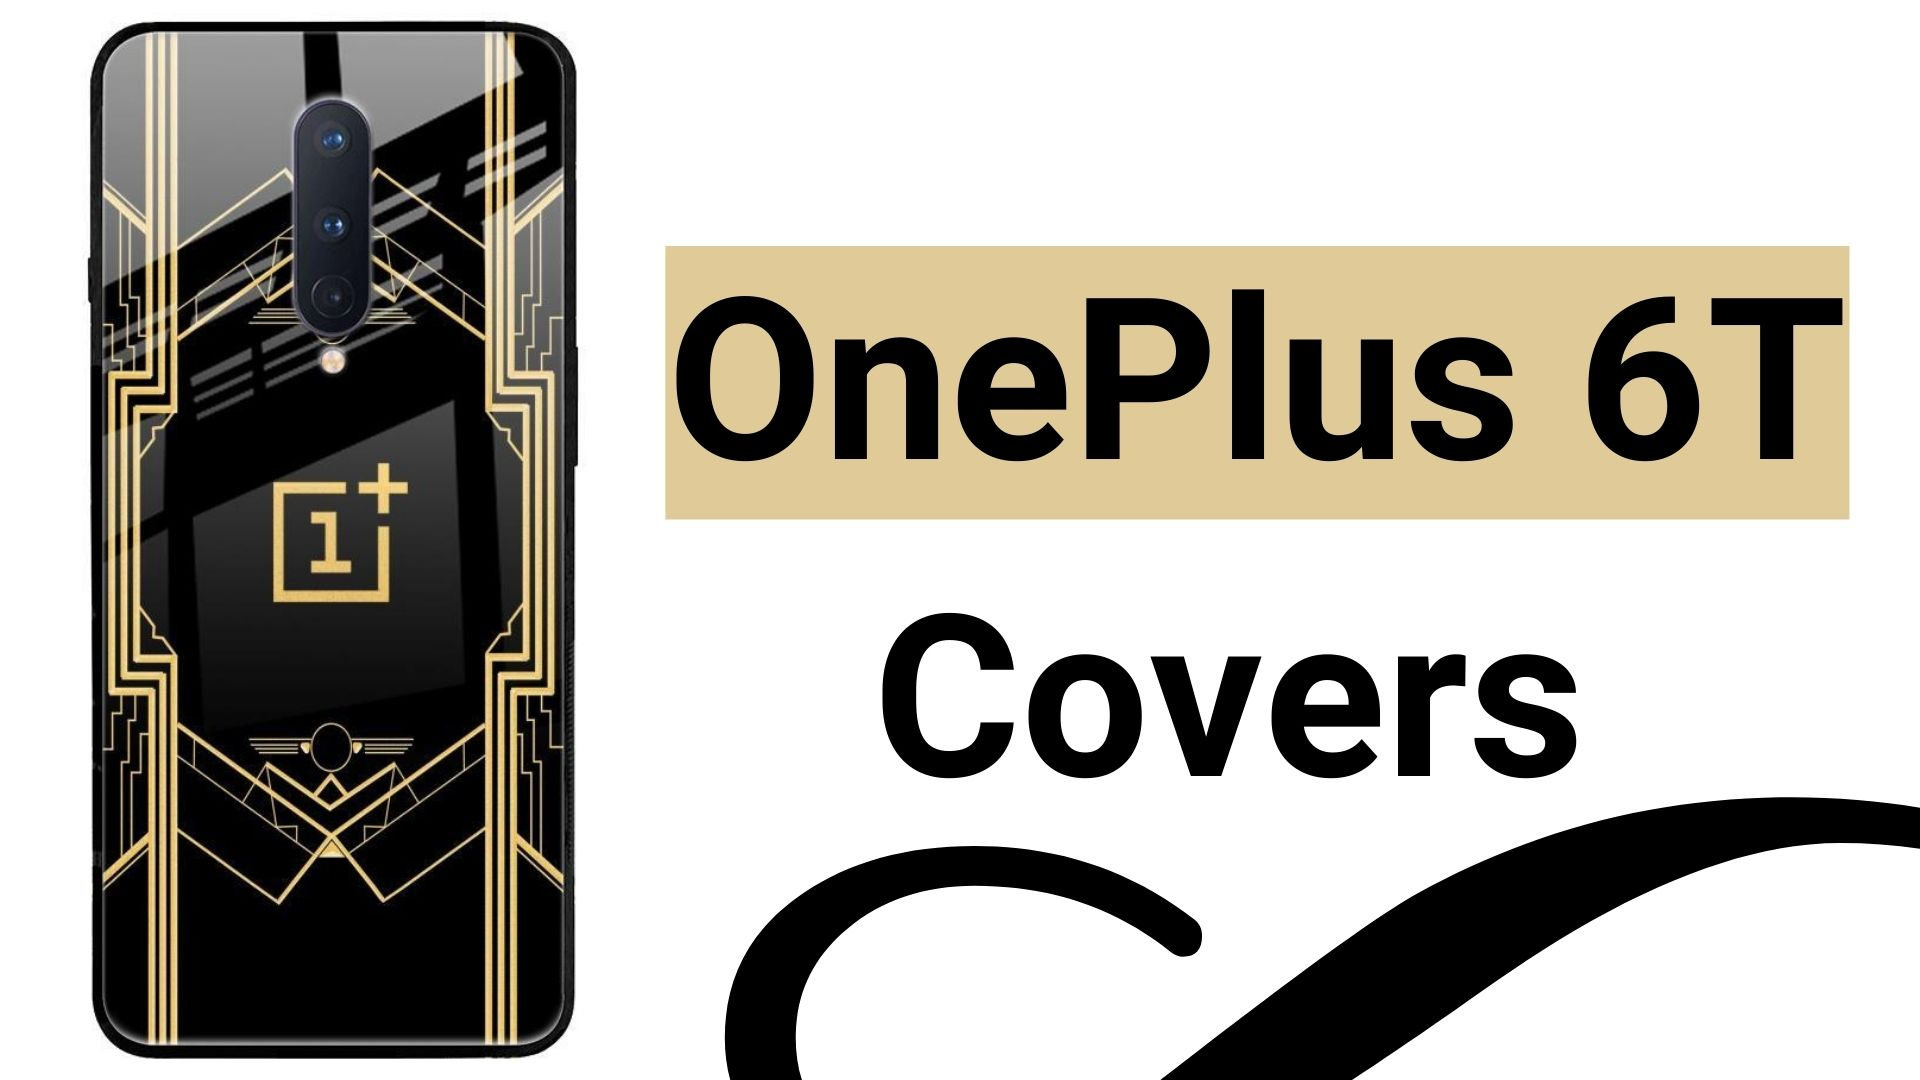 OnePlus 6T Covers